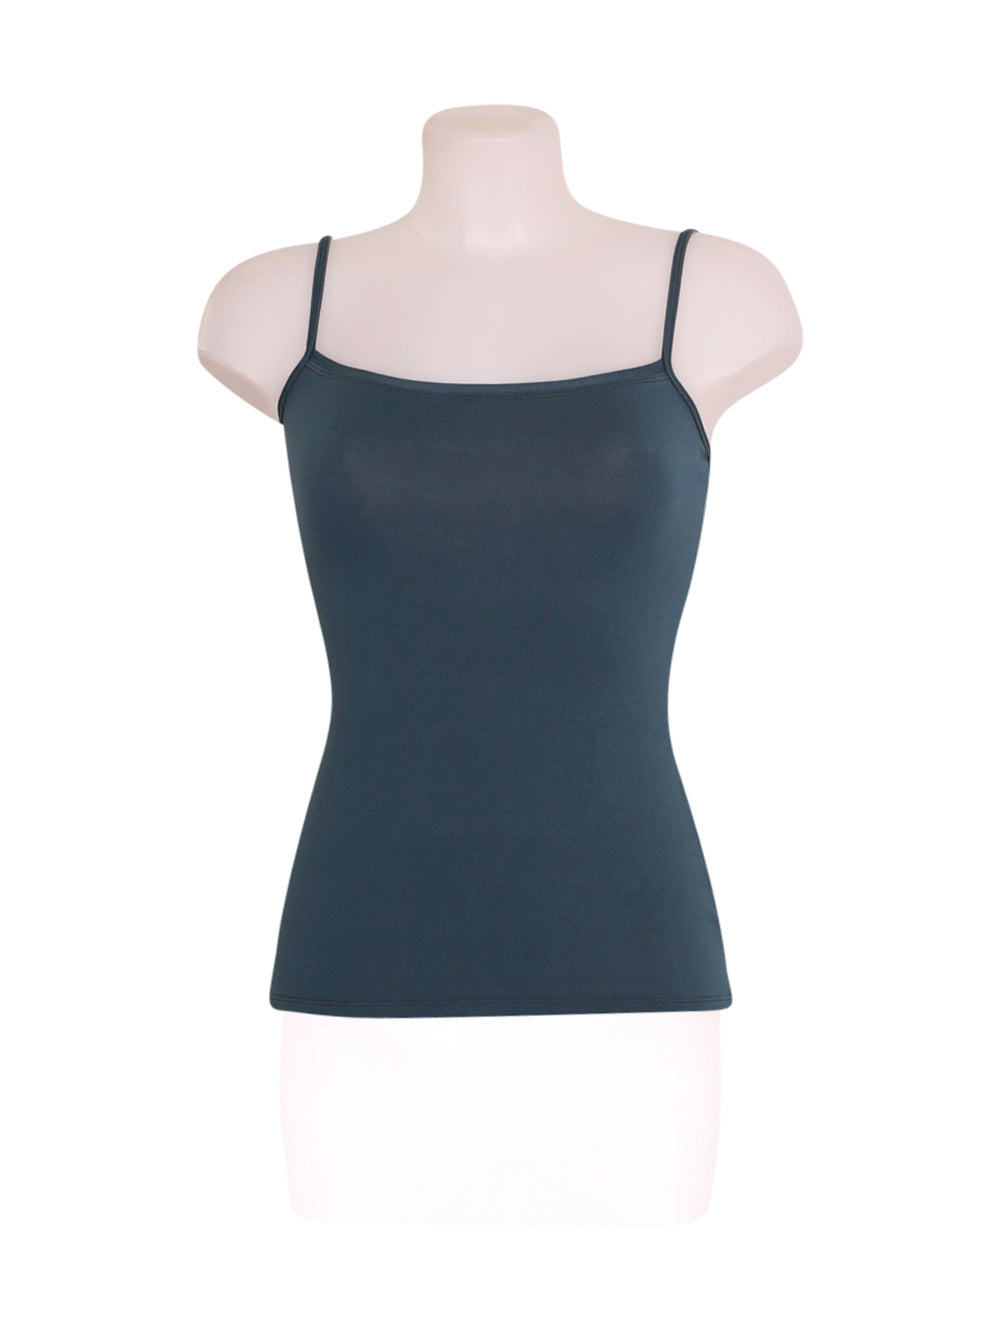 Front photo of Preloved Intimissimi Blue Woman's sleeveless top - size 8/S